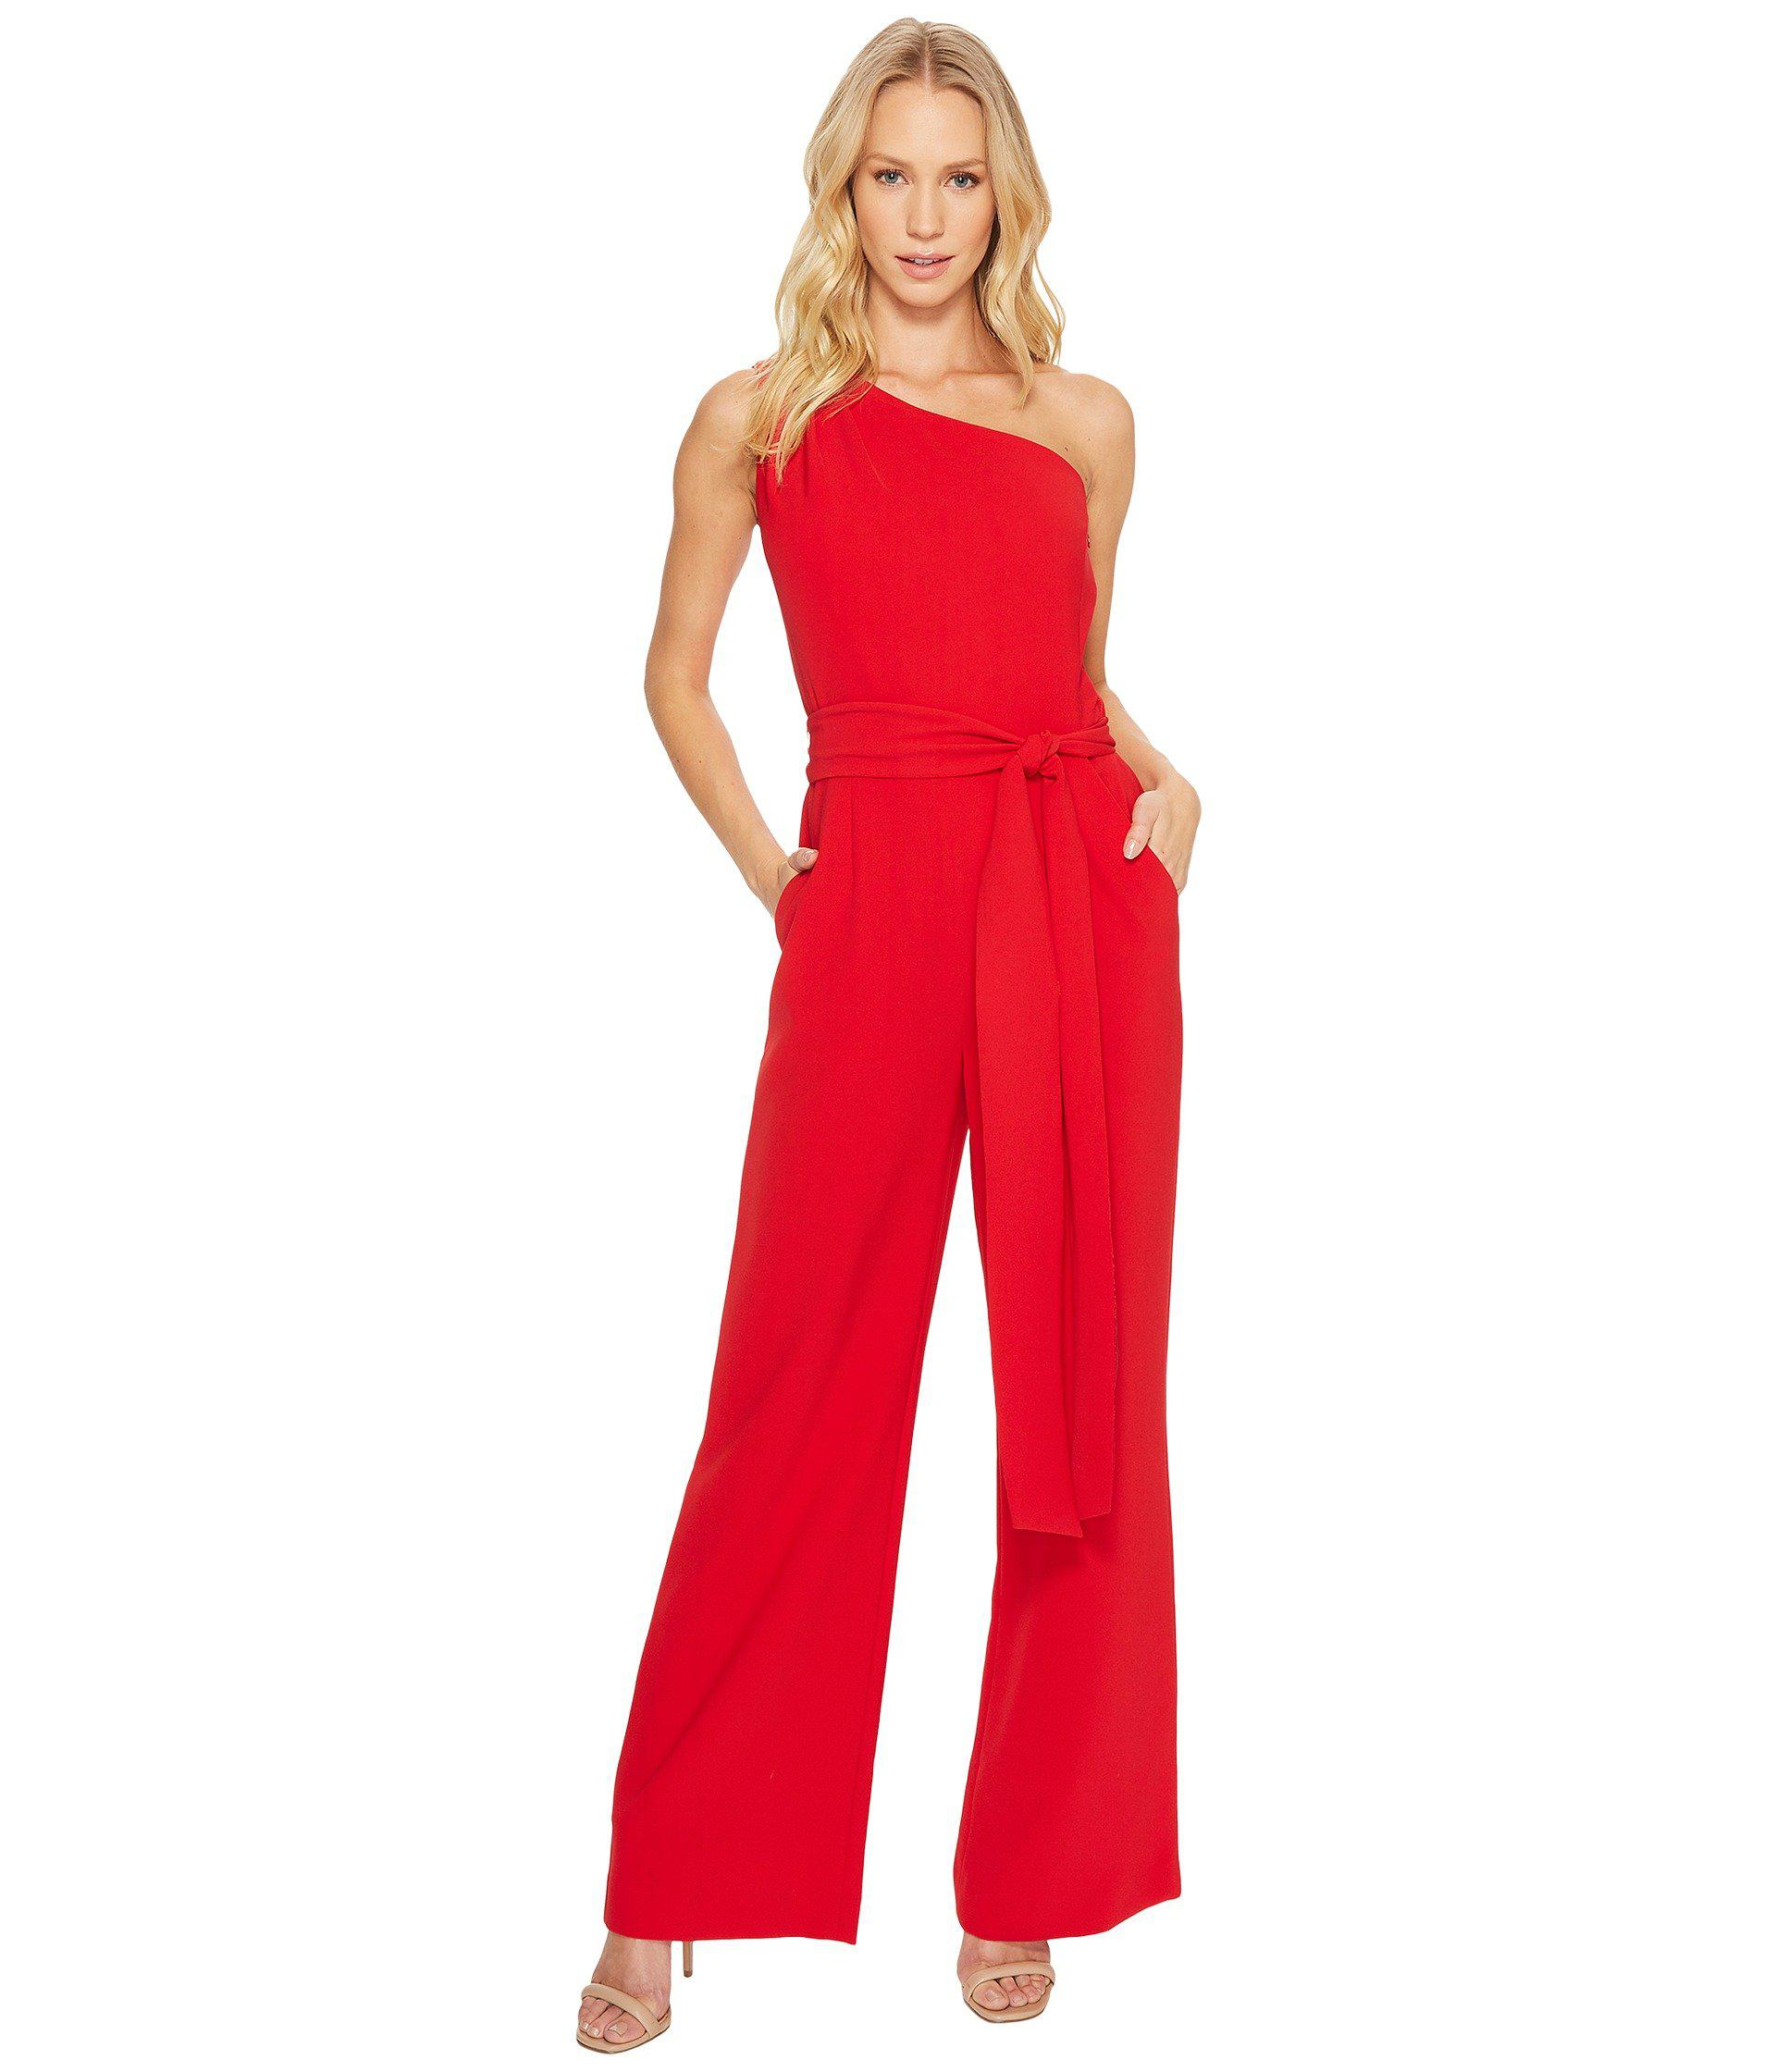 e6a90b6db02 Lyst - Tahari One-shoulder Jumpsuit in Red